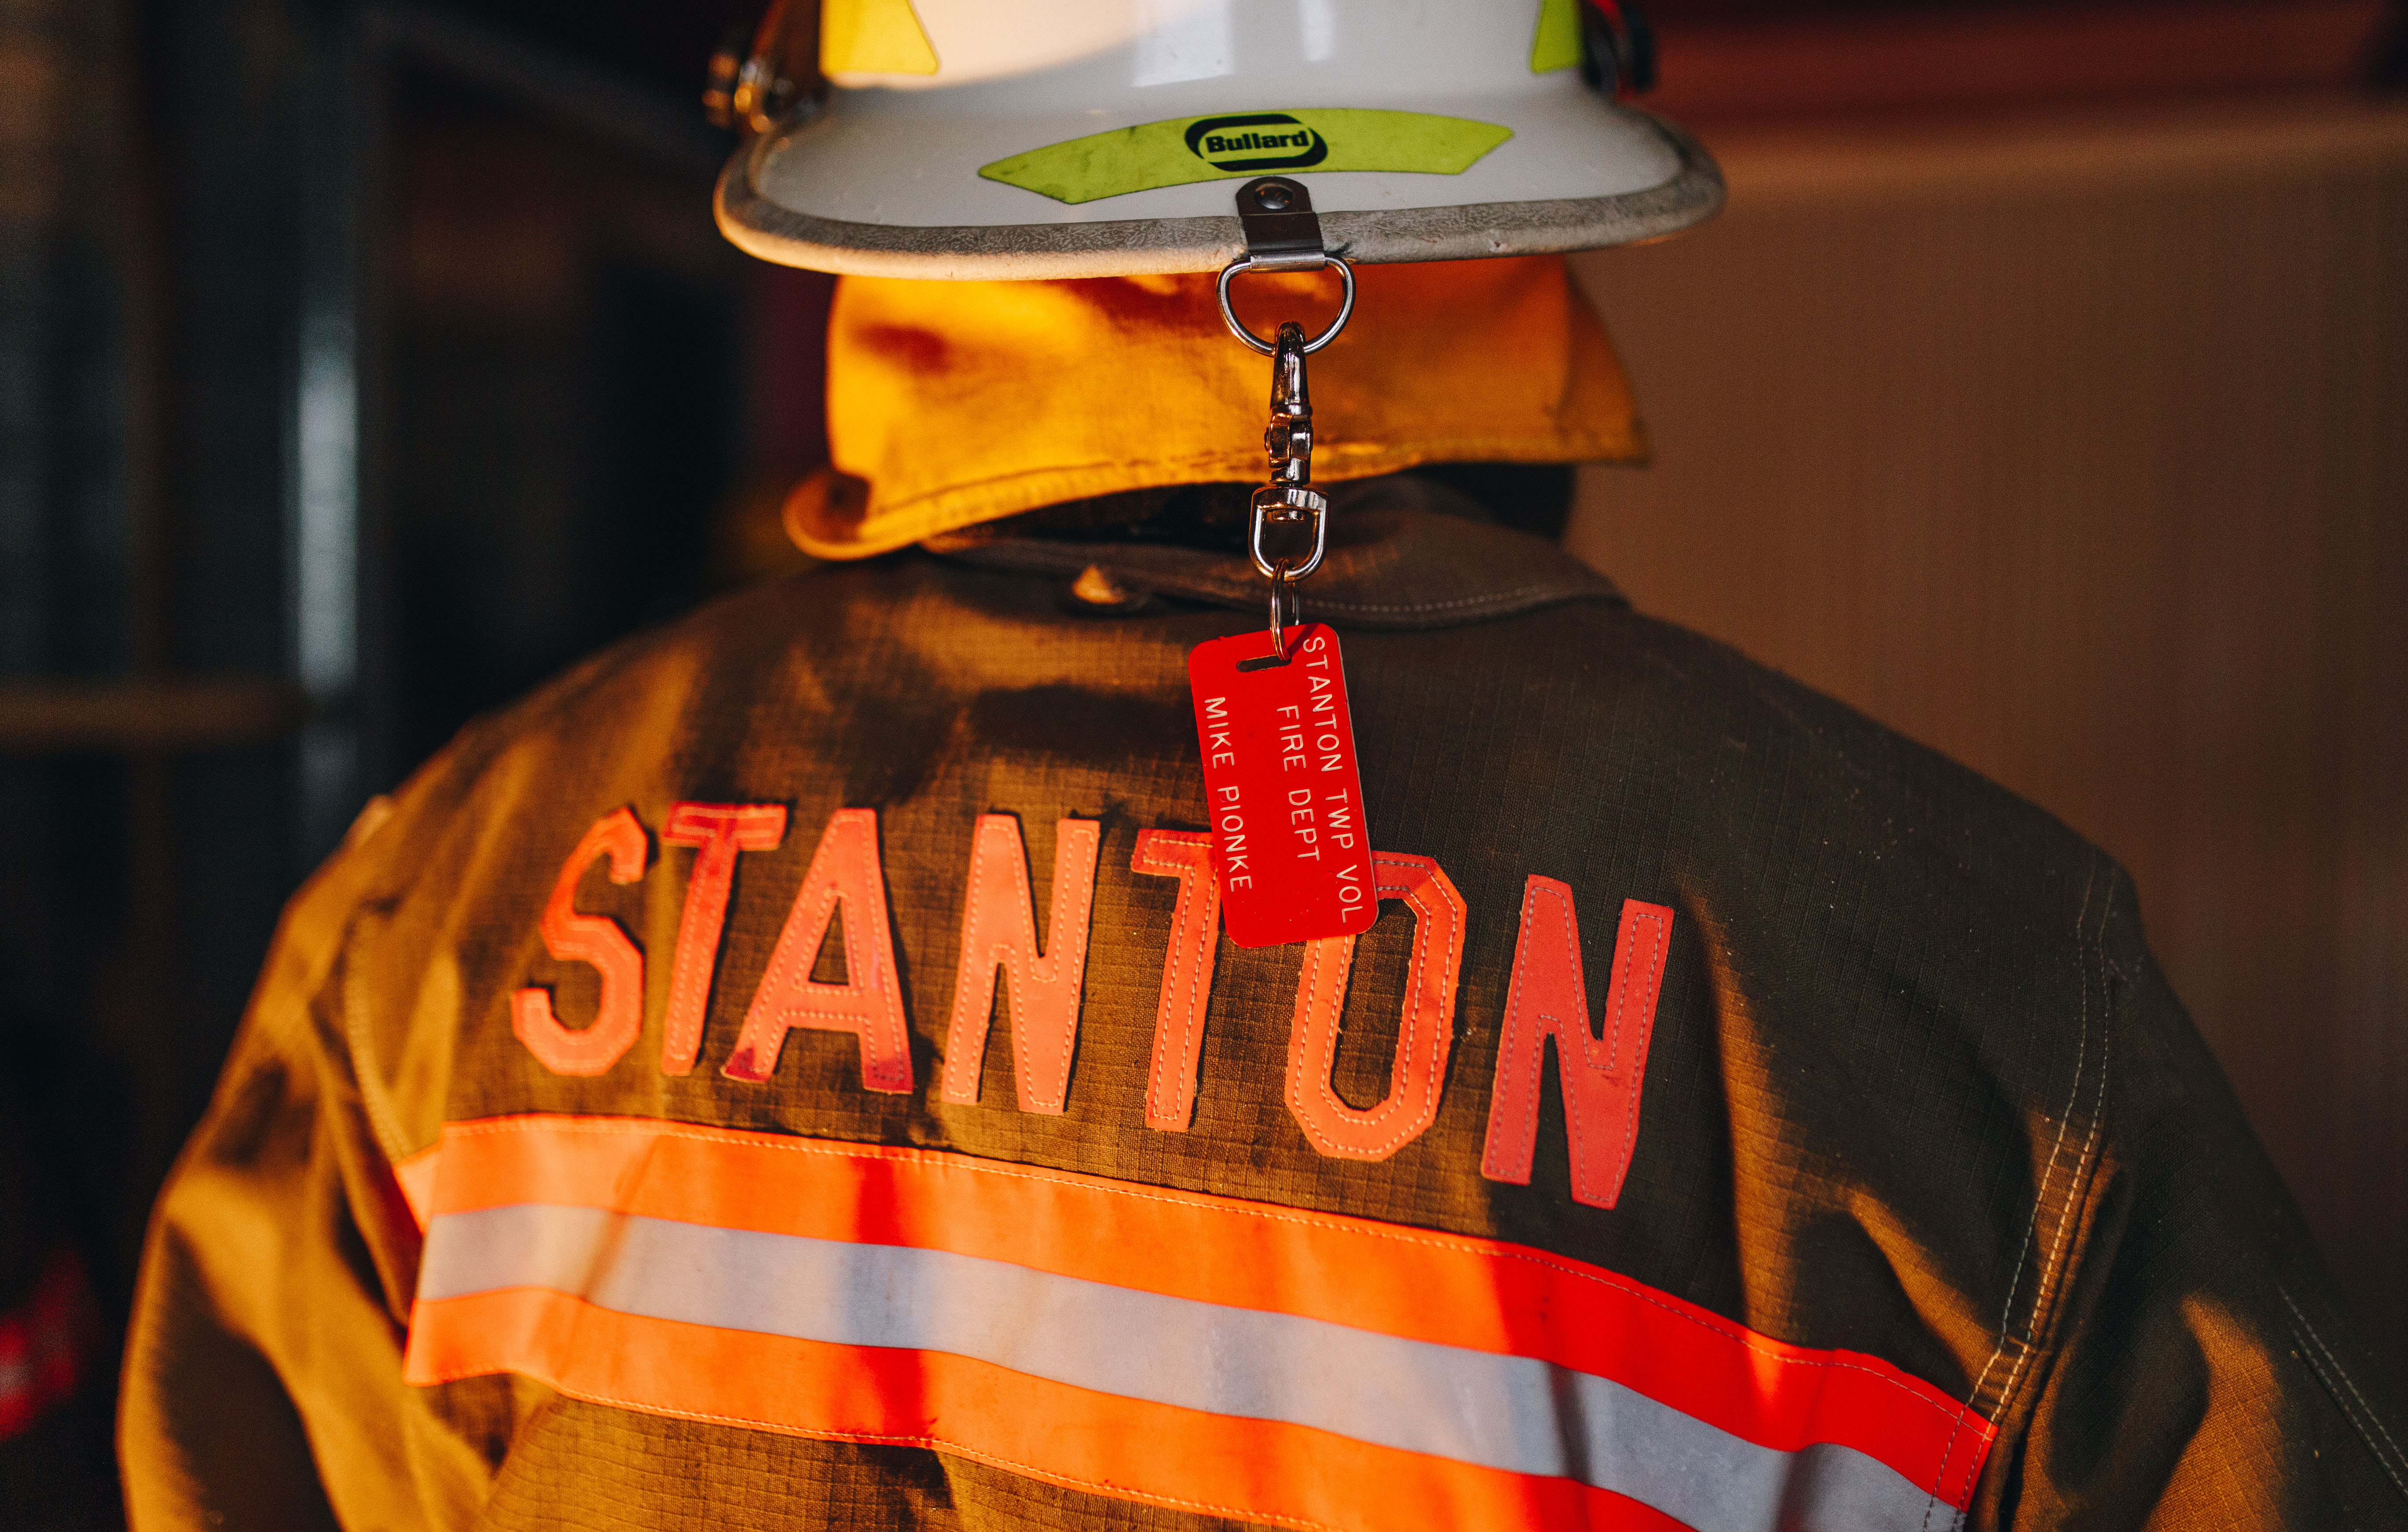 Firefighter with Stanton Fire Department